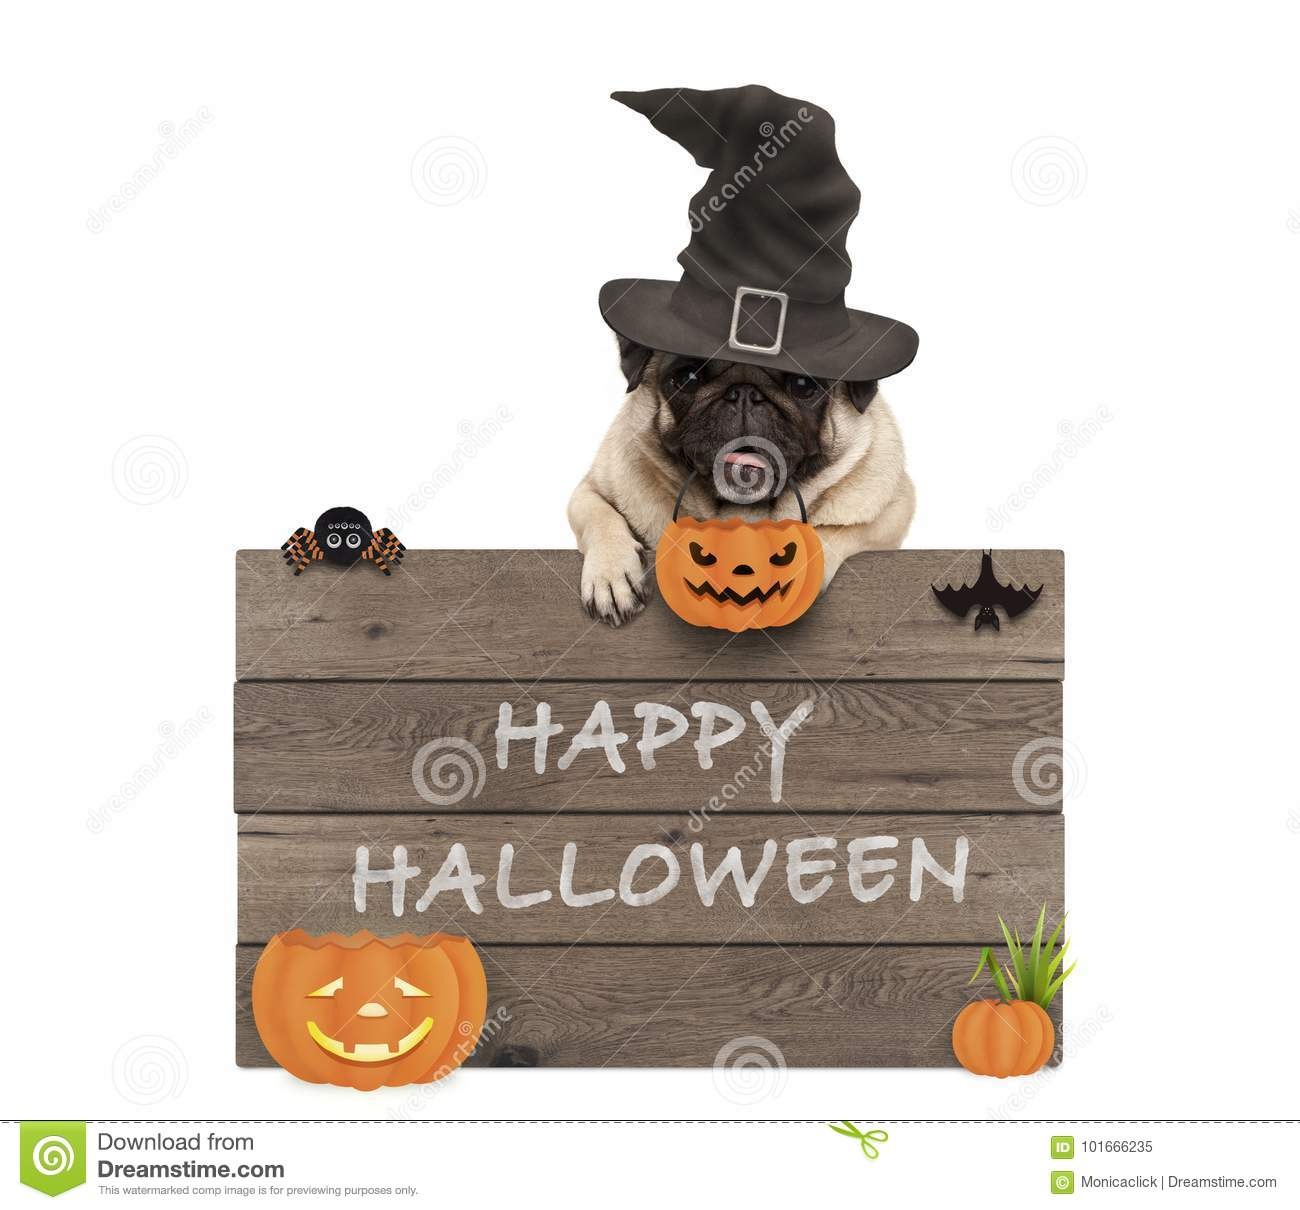 Cute pug dog wearing witch hat with wooden board and text happy halloween